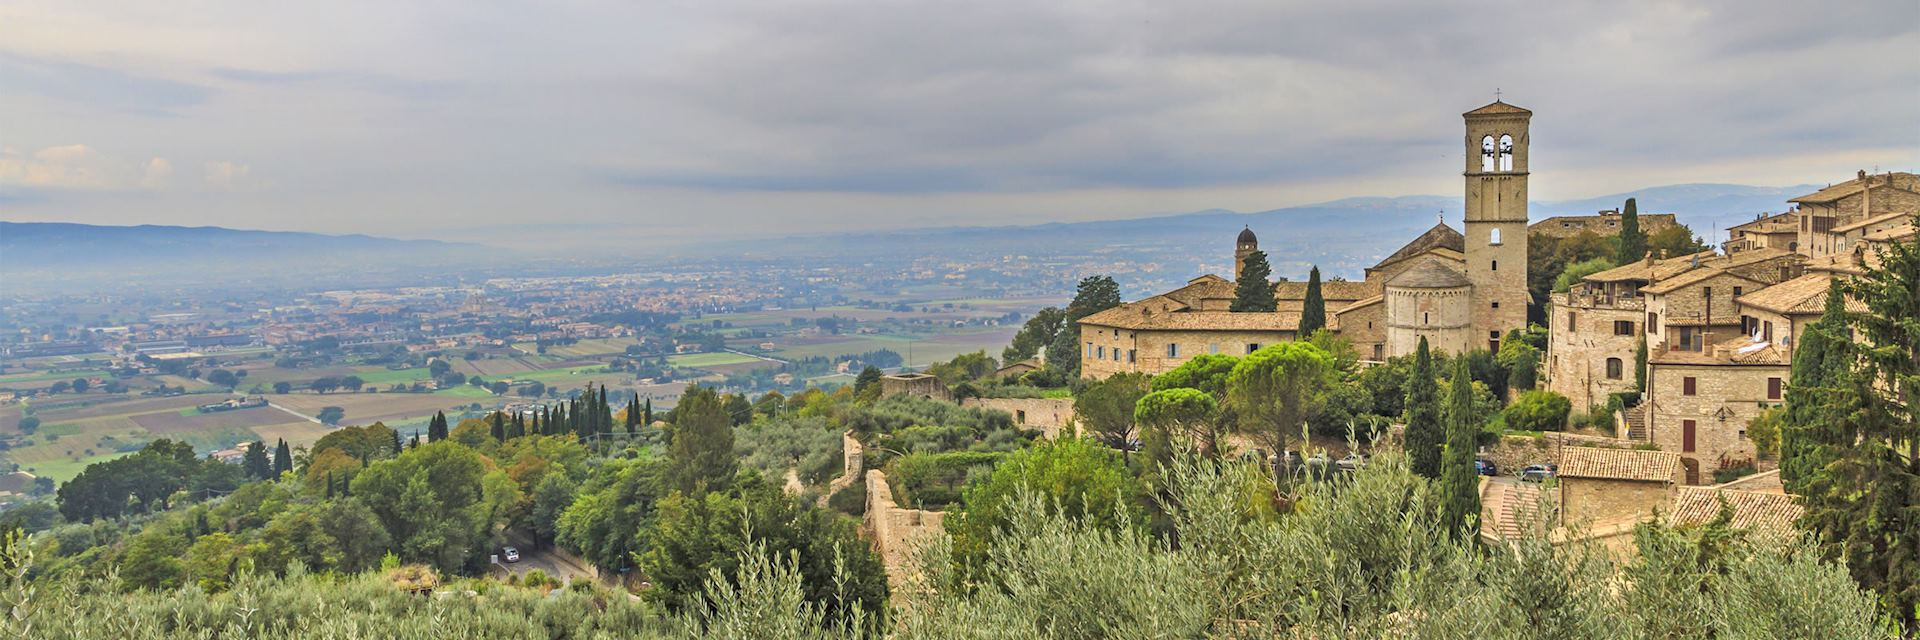 Scenic view of Umbria